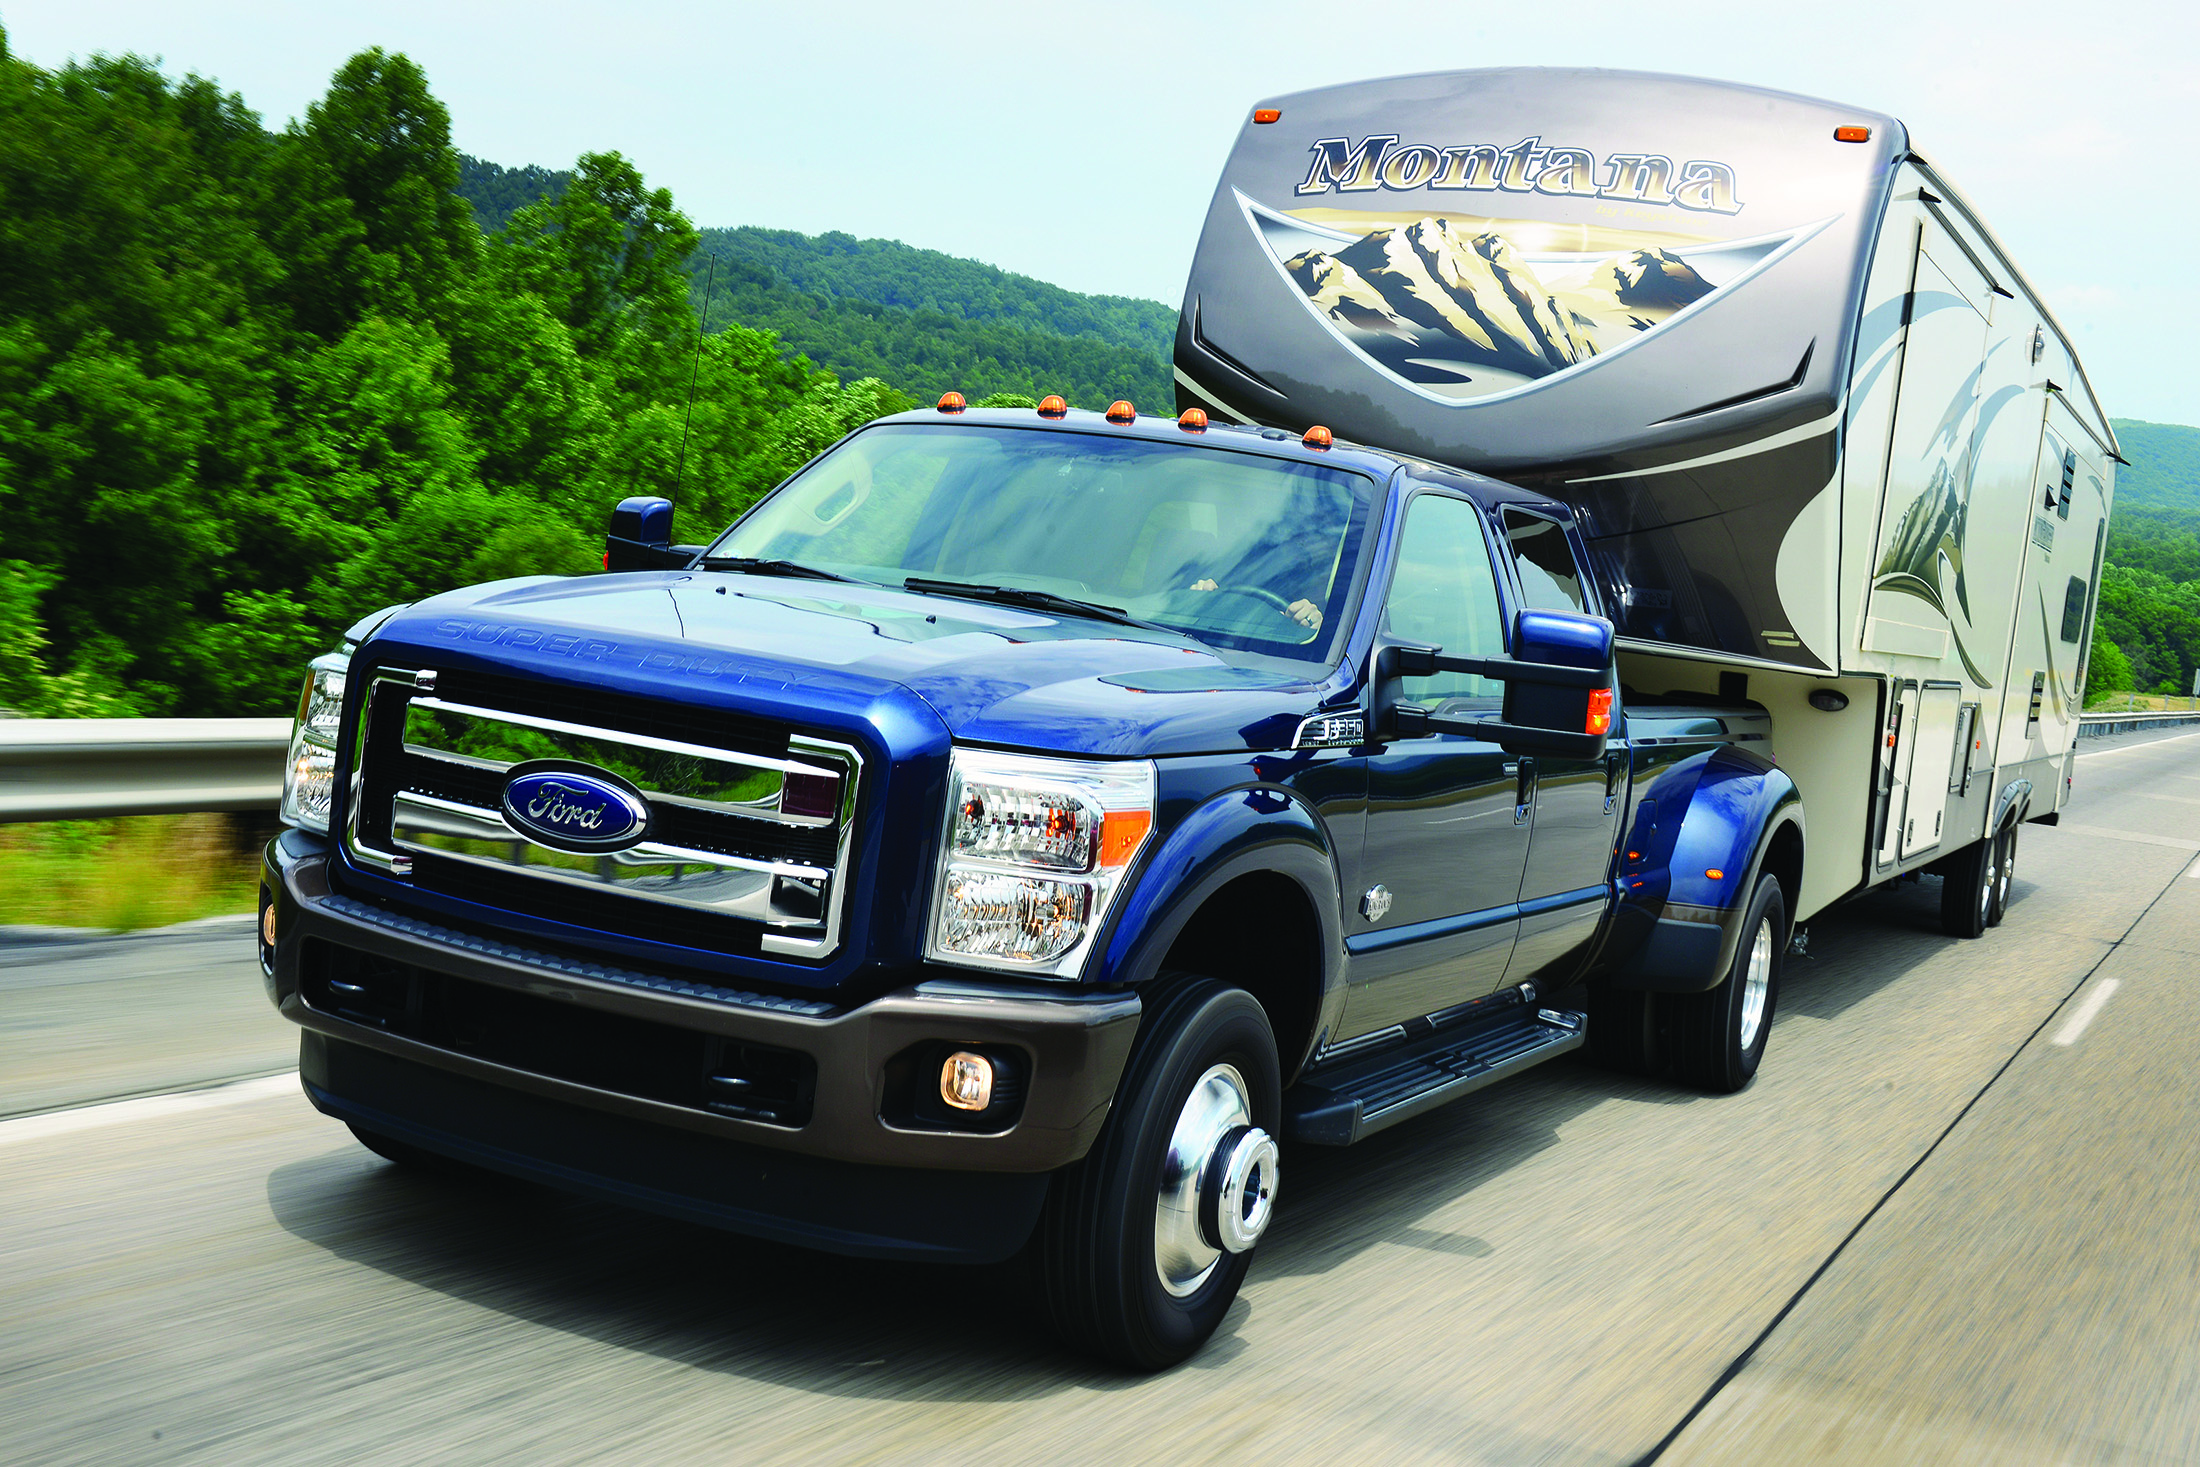 2007 ford f 150 transmission related problems autos post. Black Bedroom Furniture Sets. Home Design Ideas